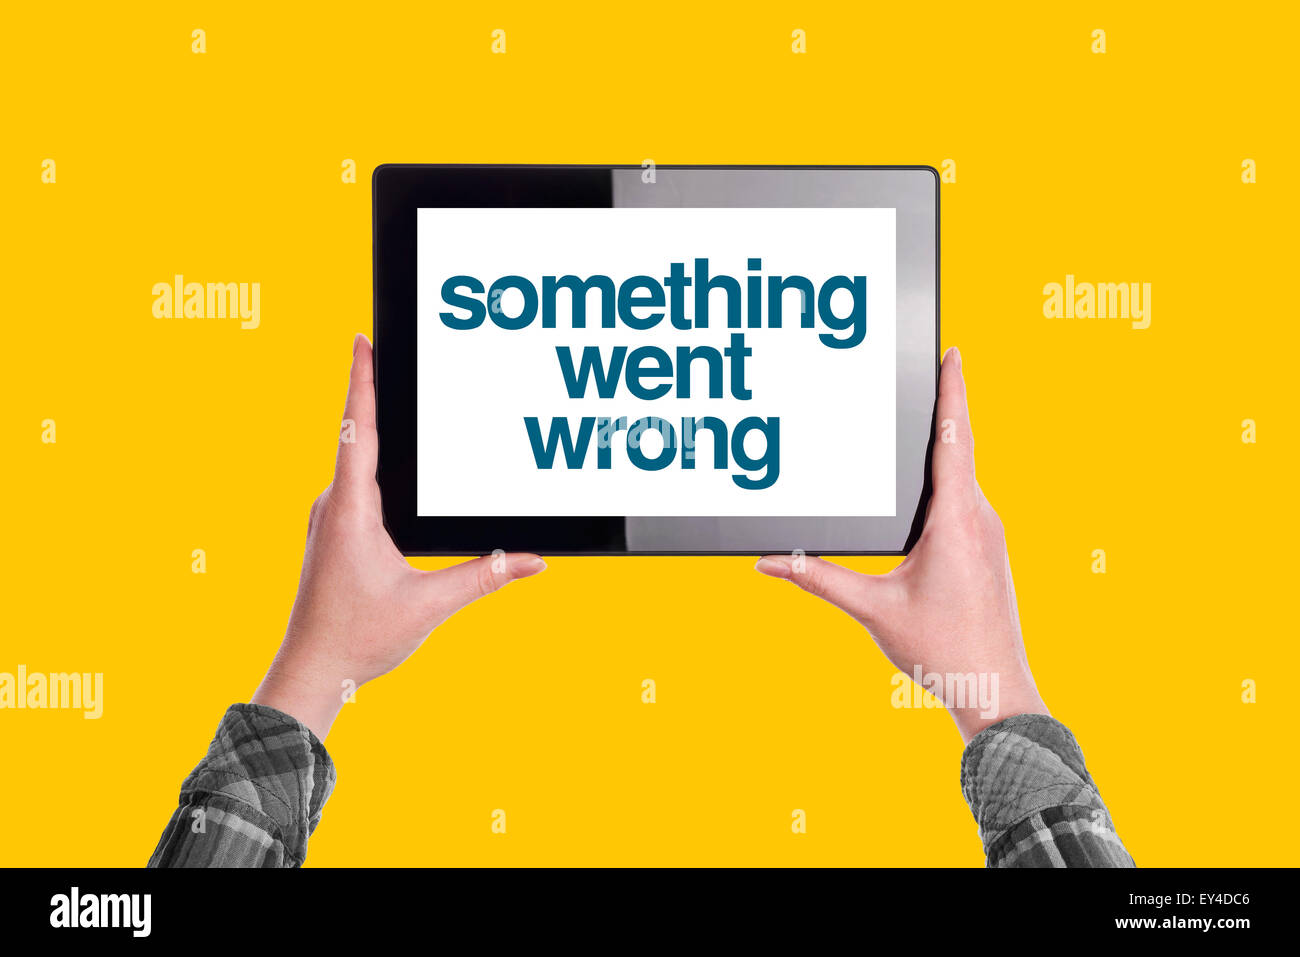 Something Went Wrong Message on Digital Tablet Computer Display, Woman Holding Device, Isolated on Yellow Background - Stock Image